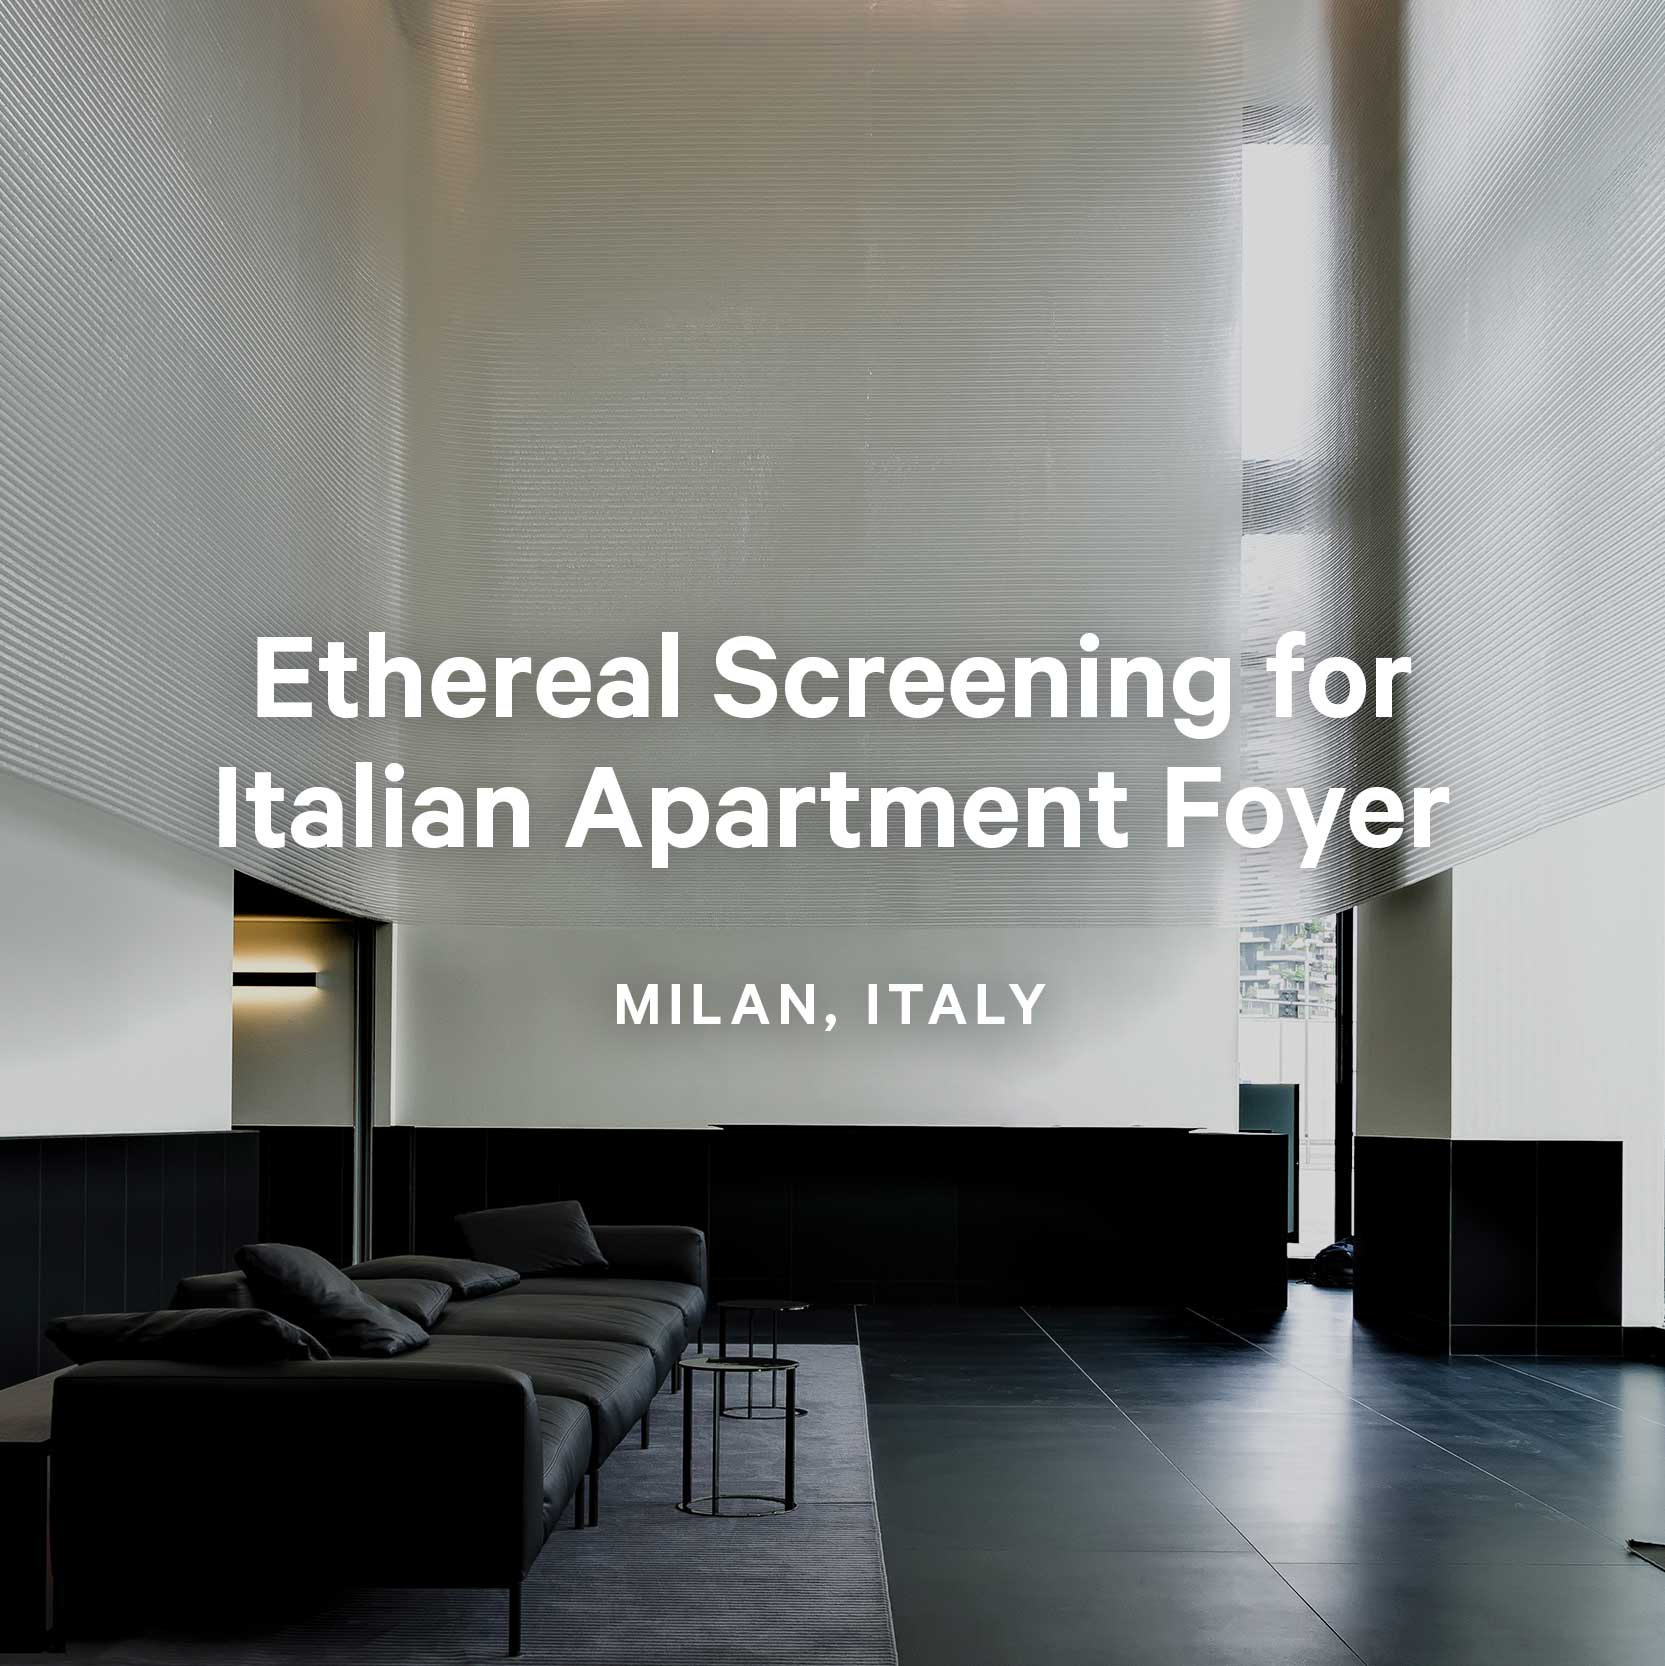 Ethereal Screening for Italian Apartment Foyer